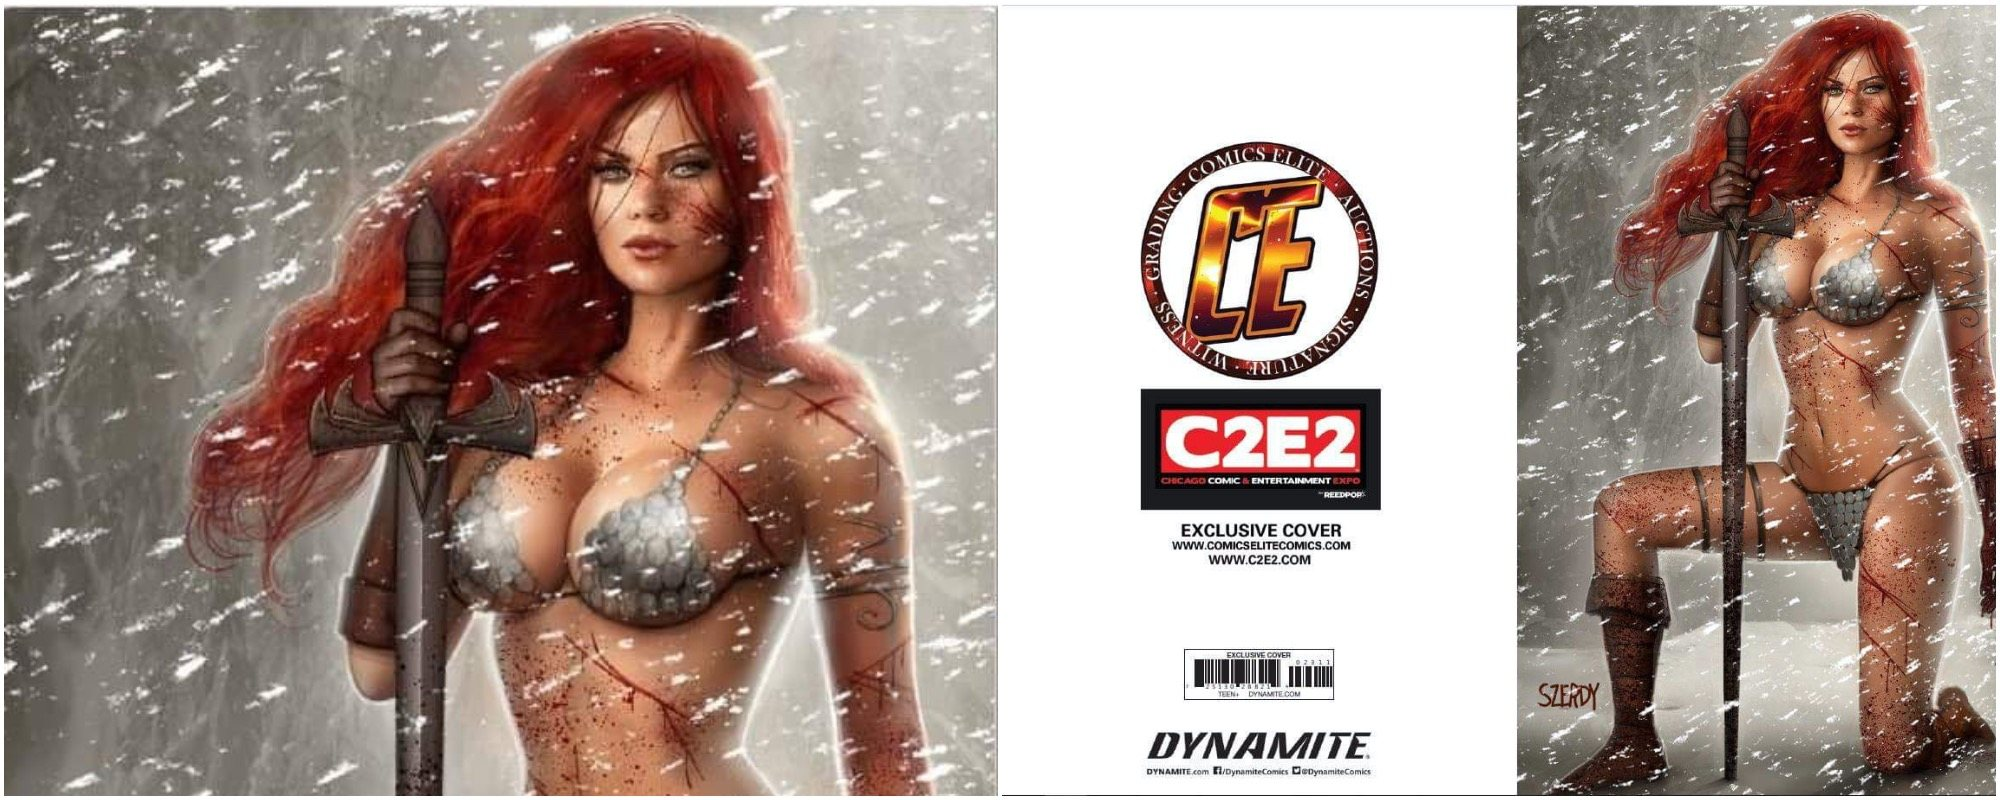 RED SONJA AGE OF CHAOS #2 C2E2 NATHAN SZERDY EXCLUSIVE VARIANT